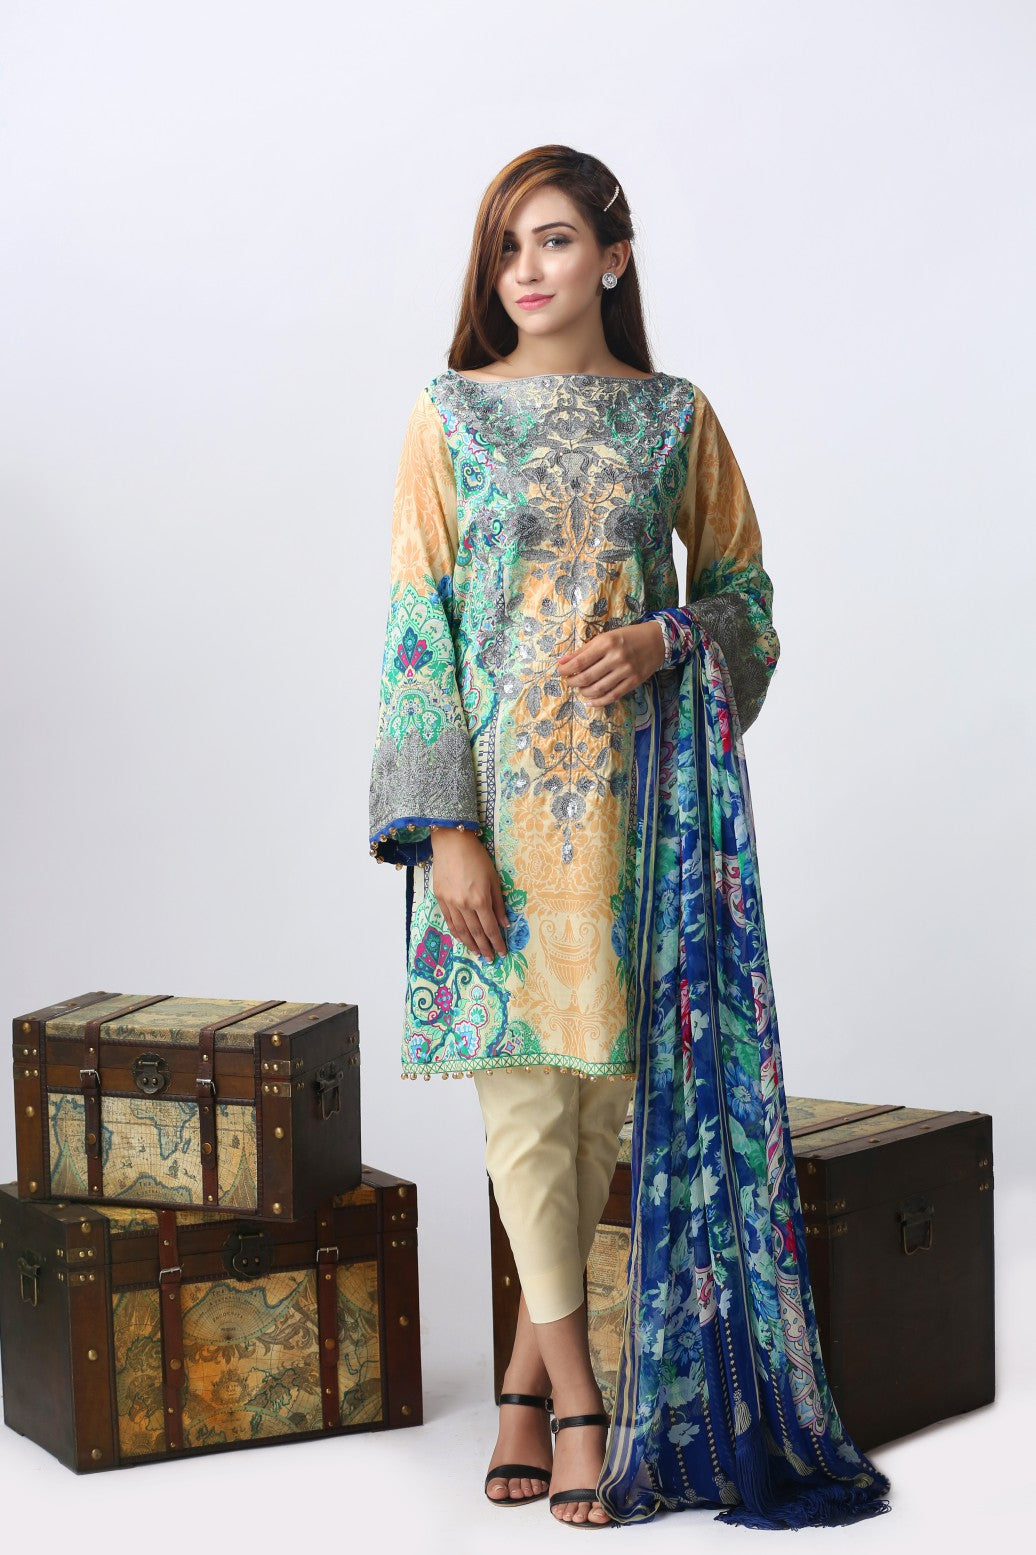 Alkaram Studio - Beige Luxury Embroidered Suit Clearance Sale